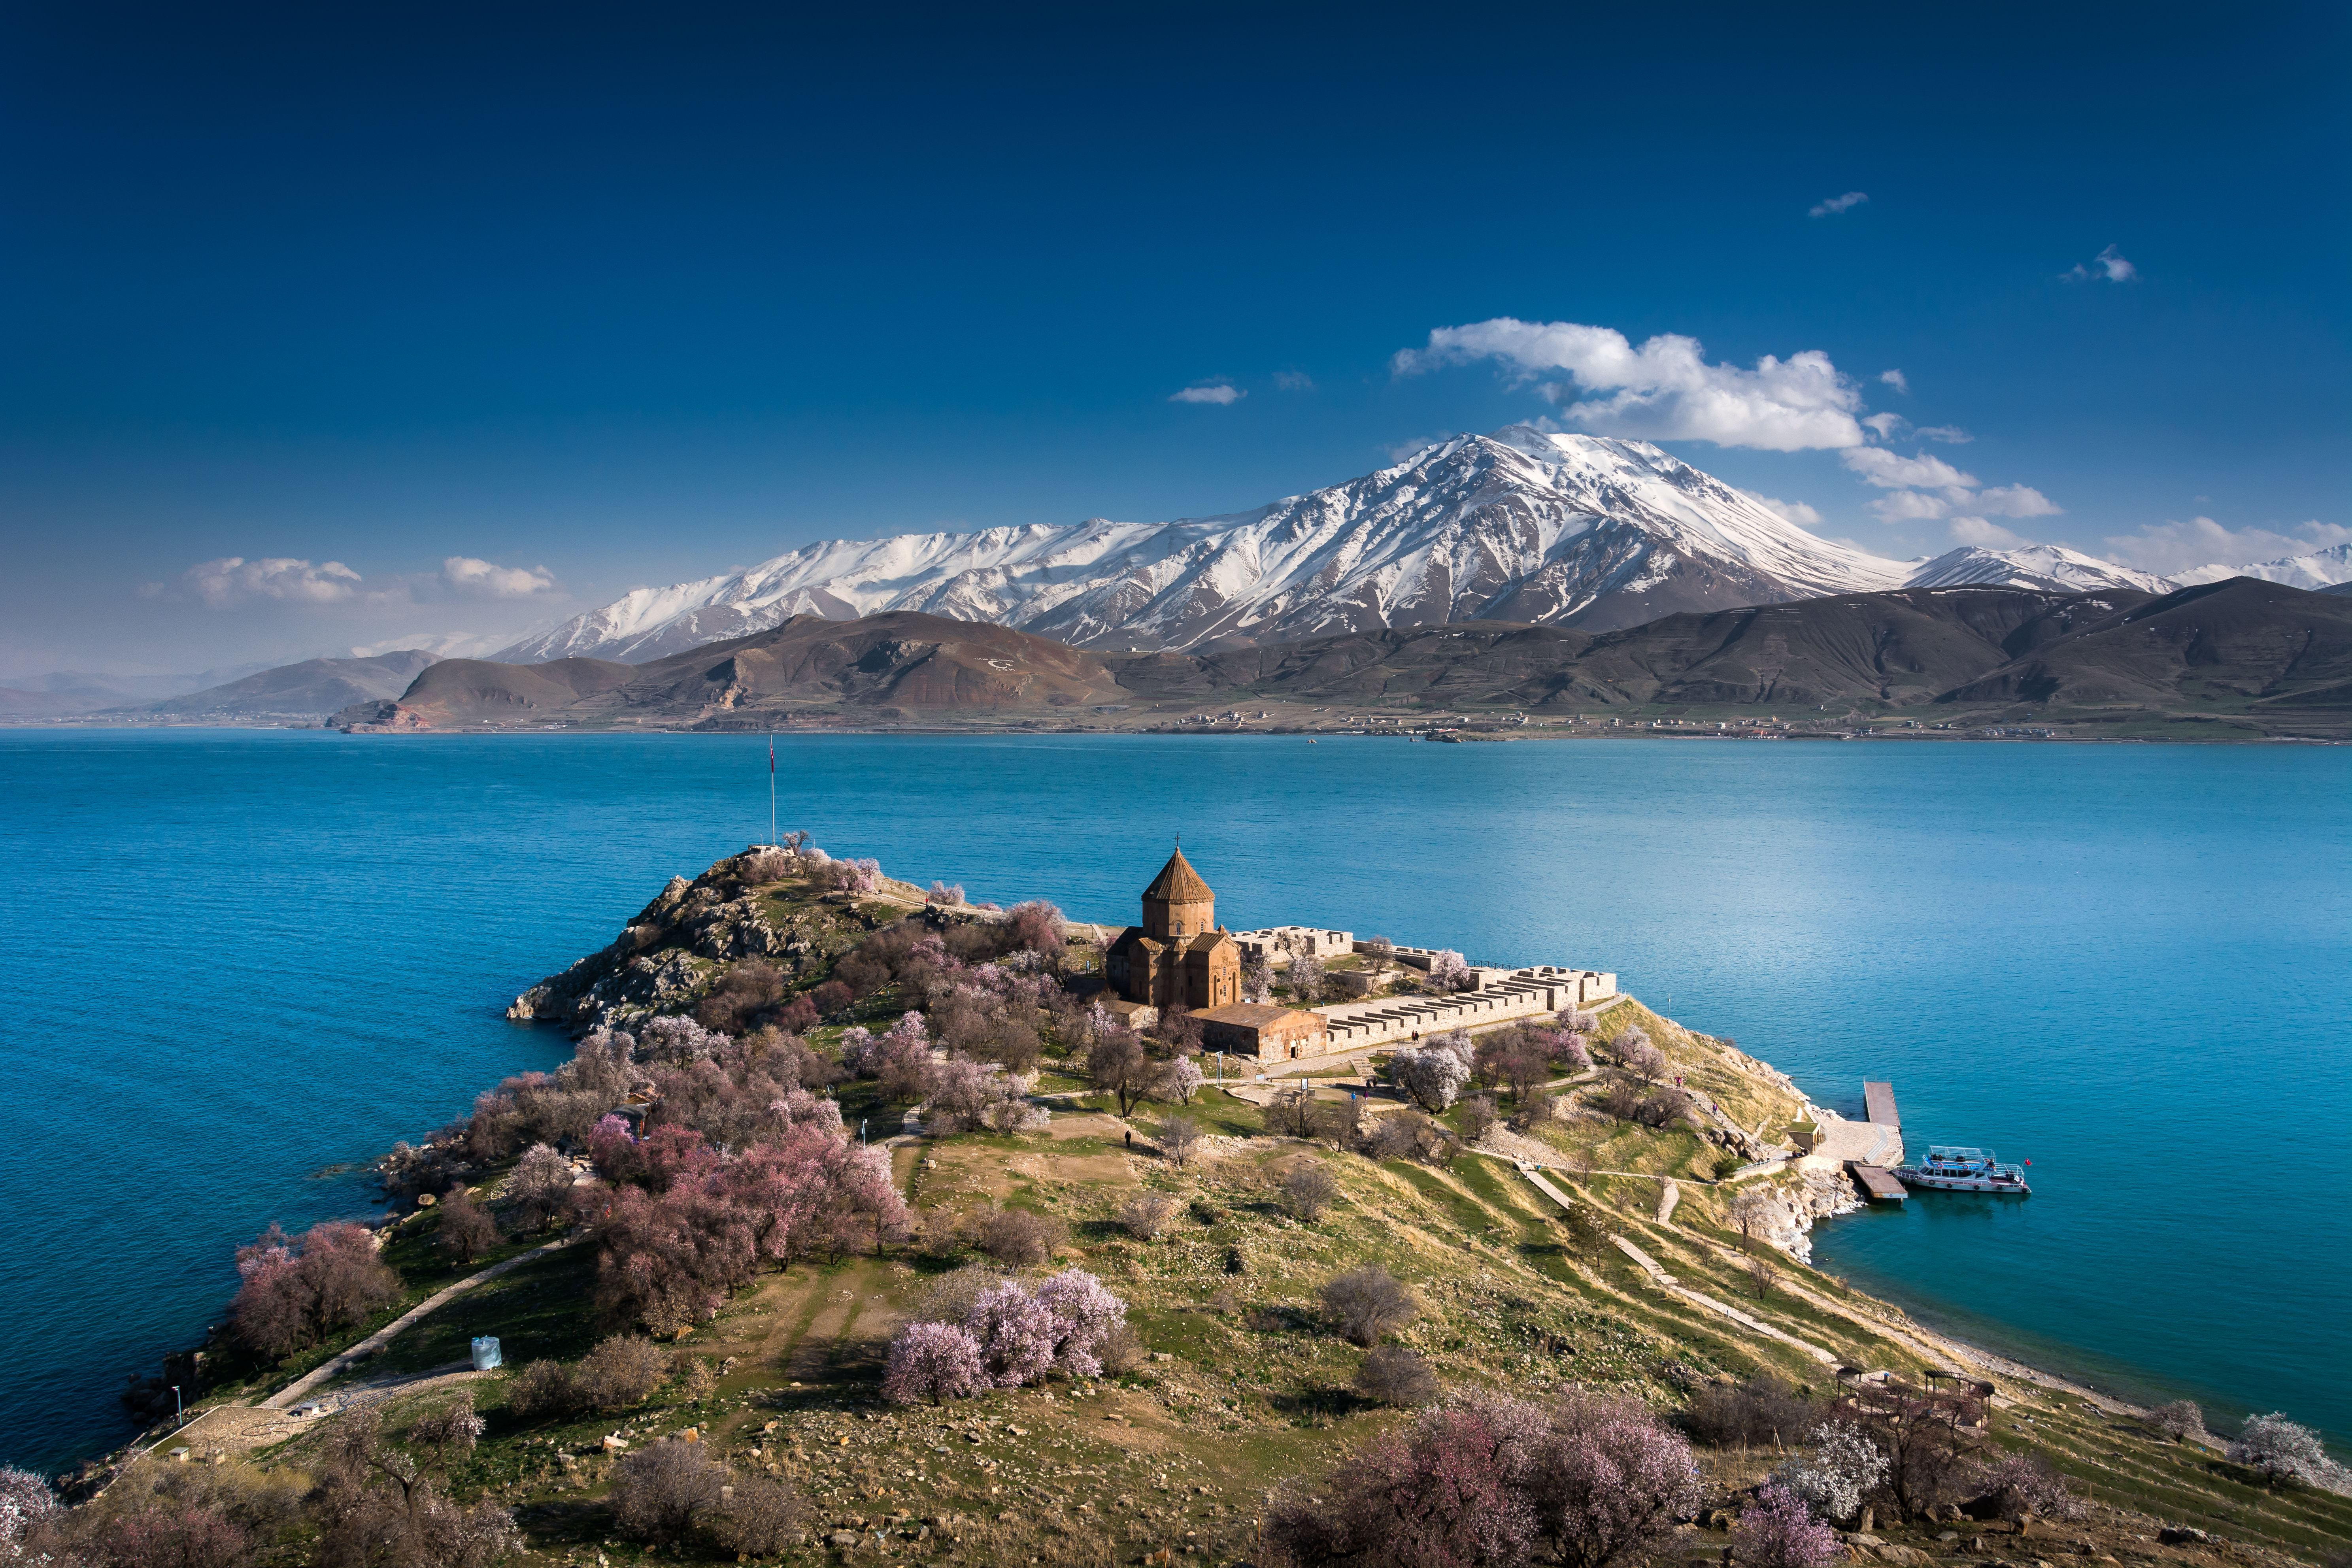 'armenian,Holy,Cross,Cathedral',Surrounded,By,Tree,In,Blossom,,In